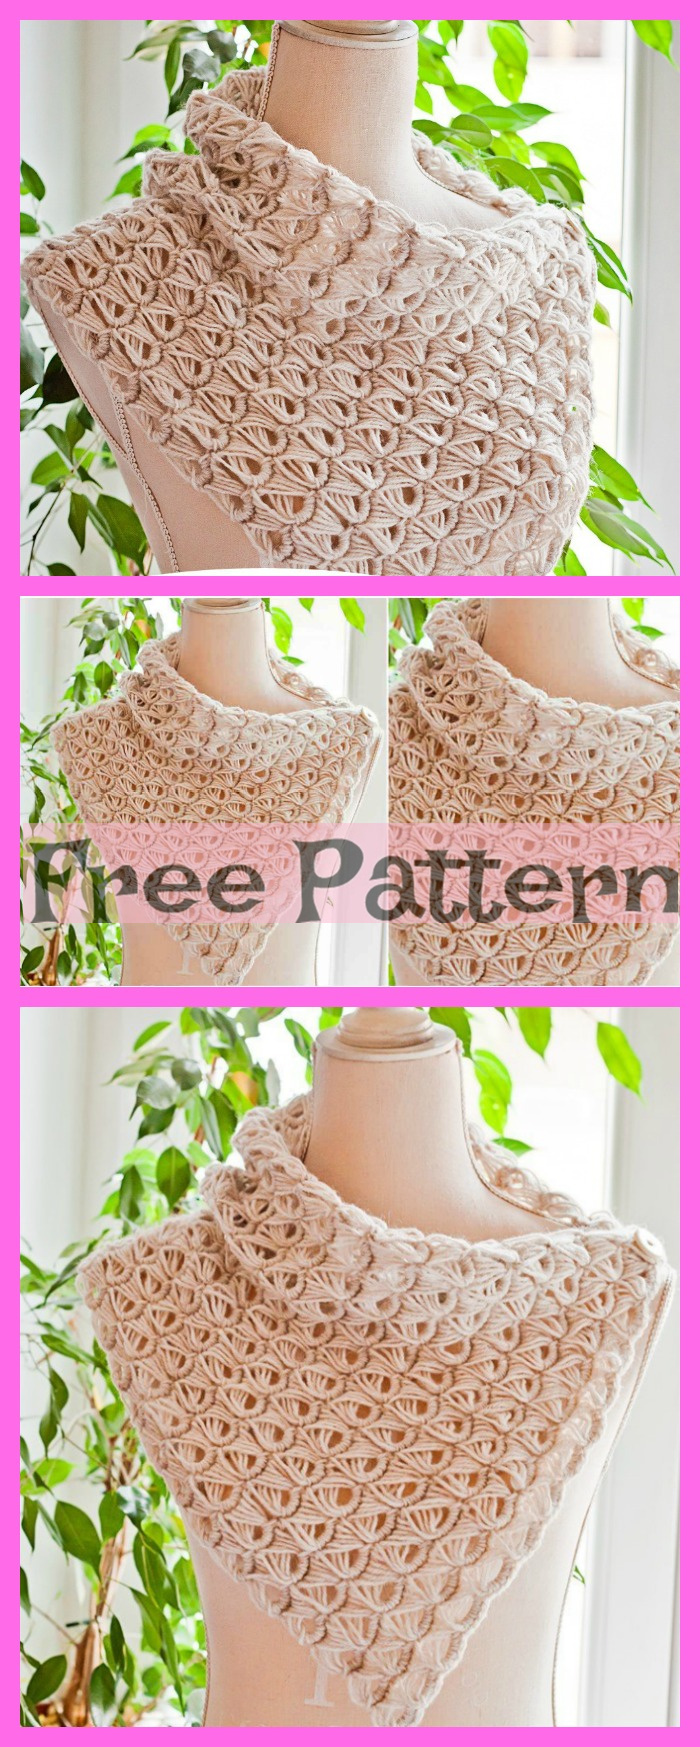 diy4ever-Crochet Broomstick Lace Cowl - Free Patterns